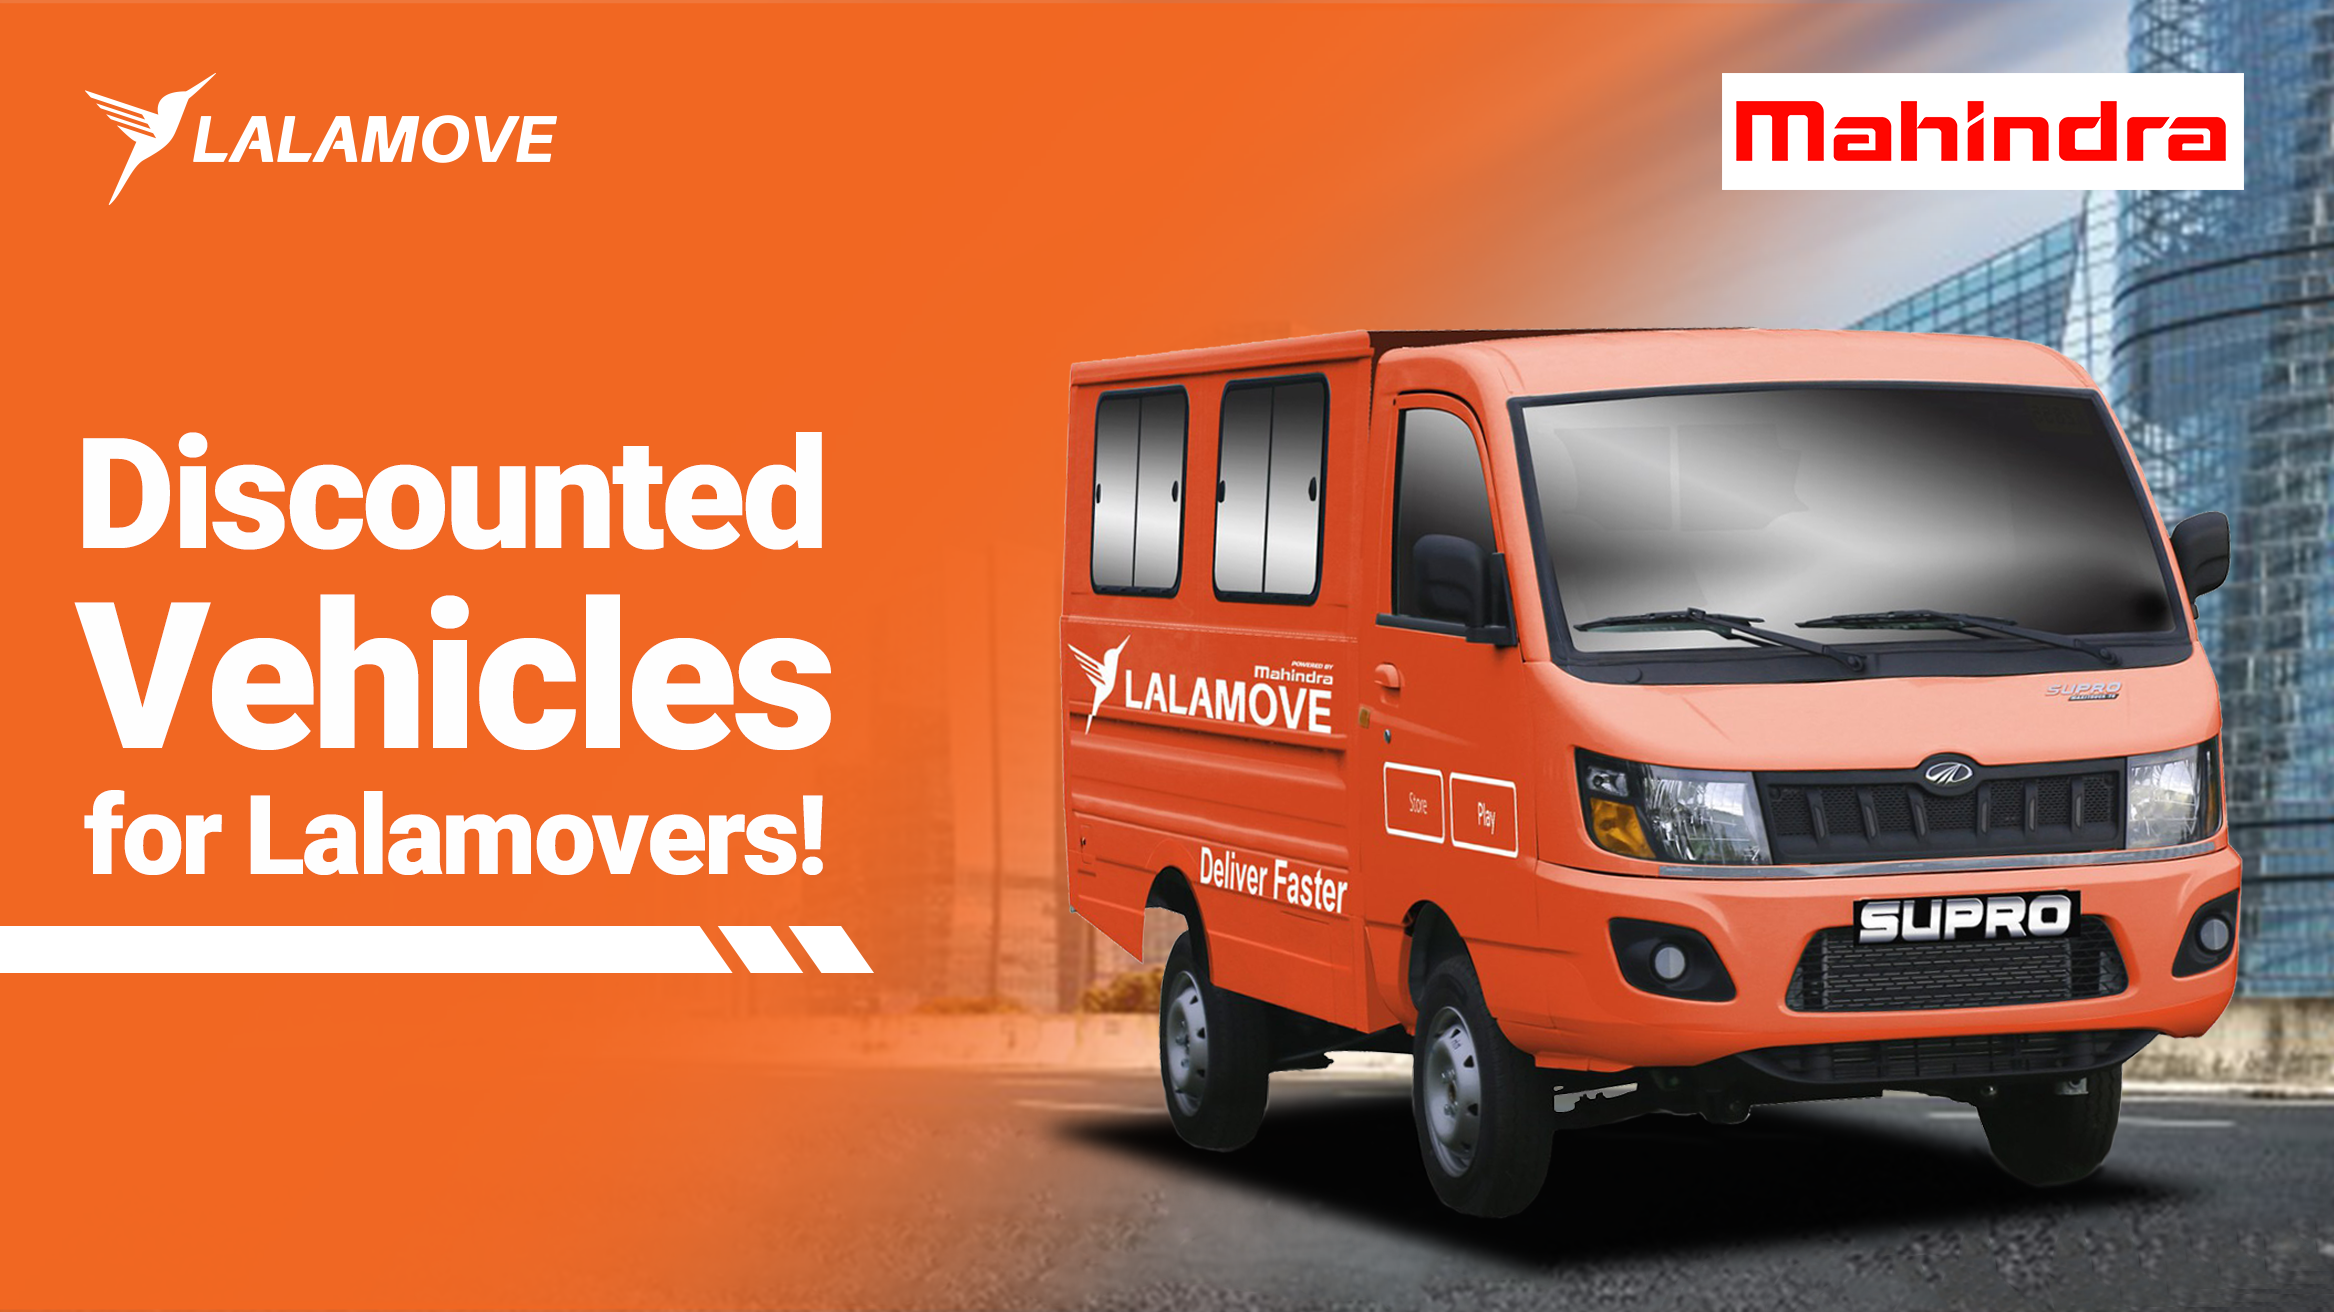 Enjoy special discounts on new vehicles from Lalamove and Mahindra Philippines